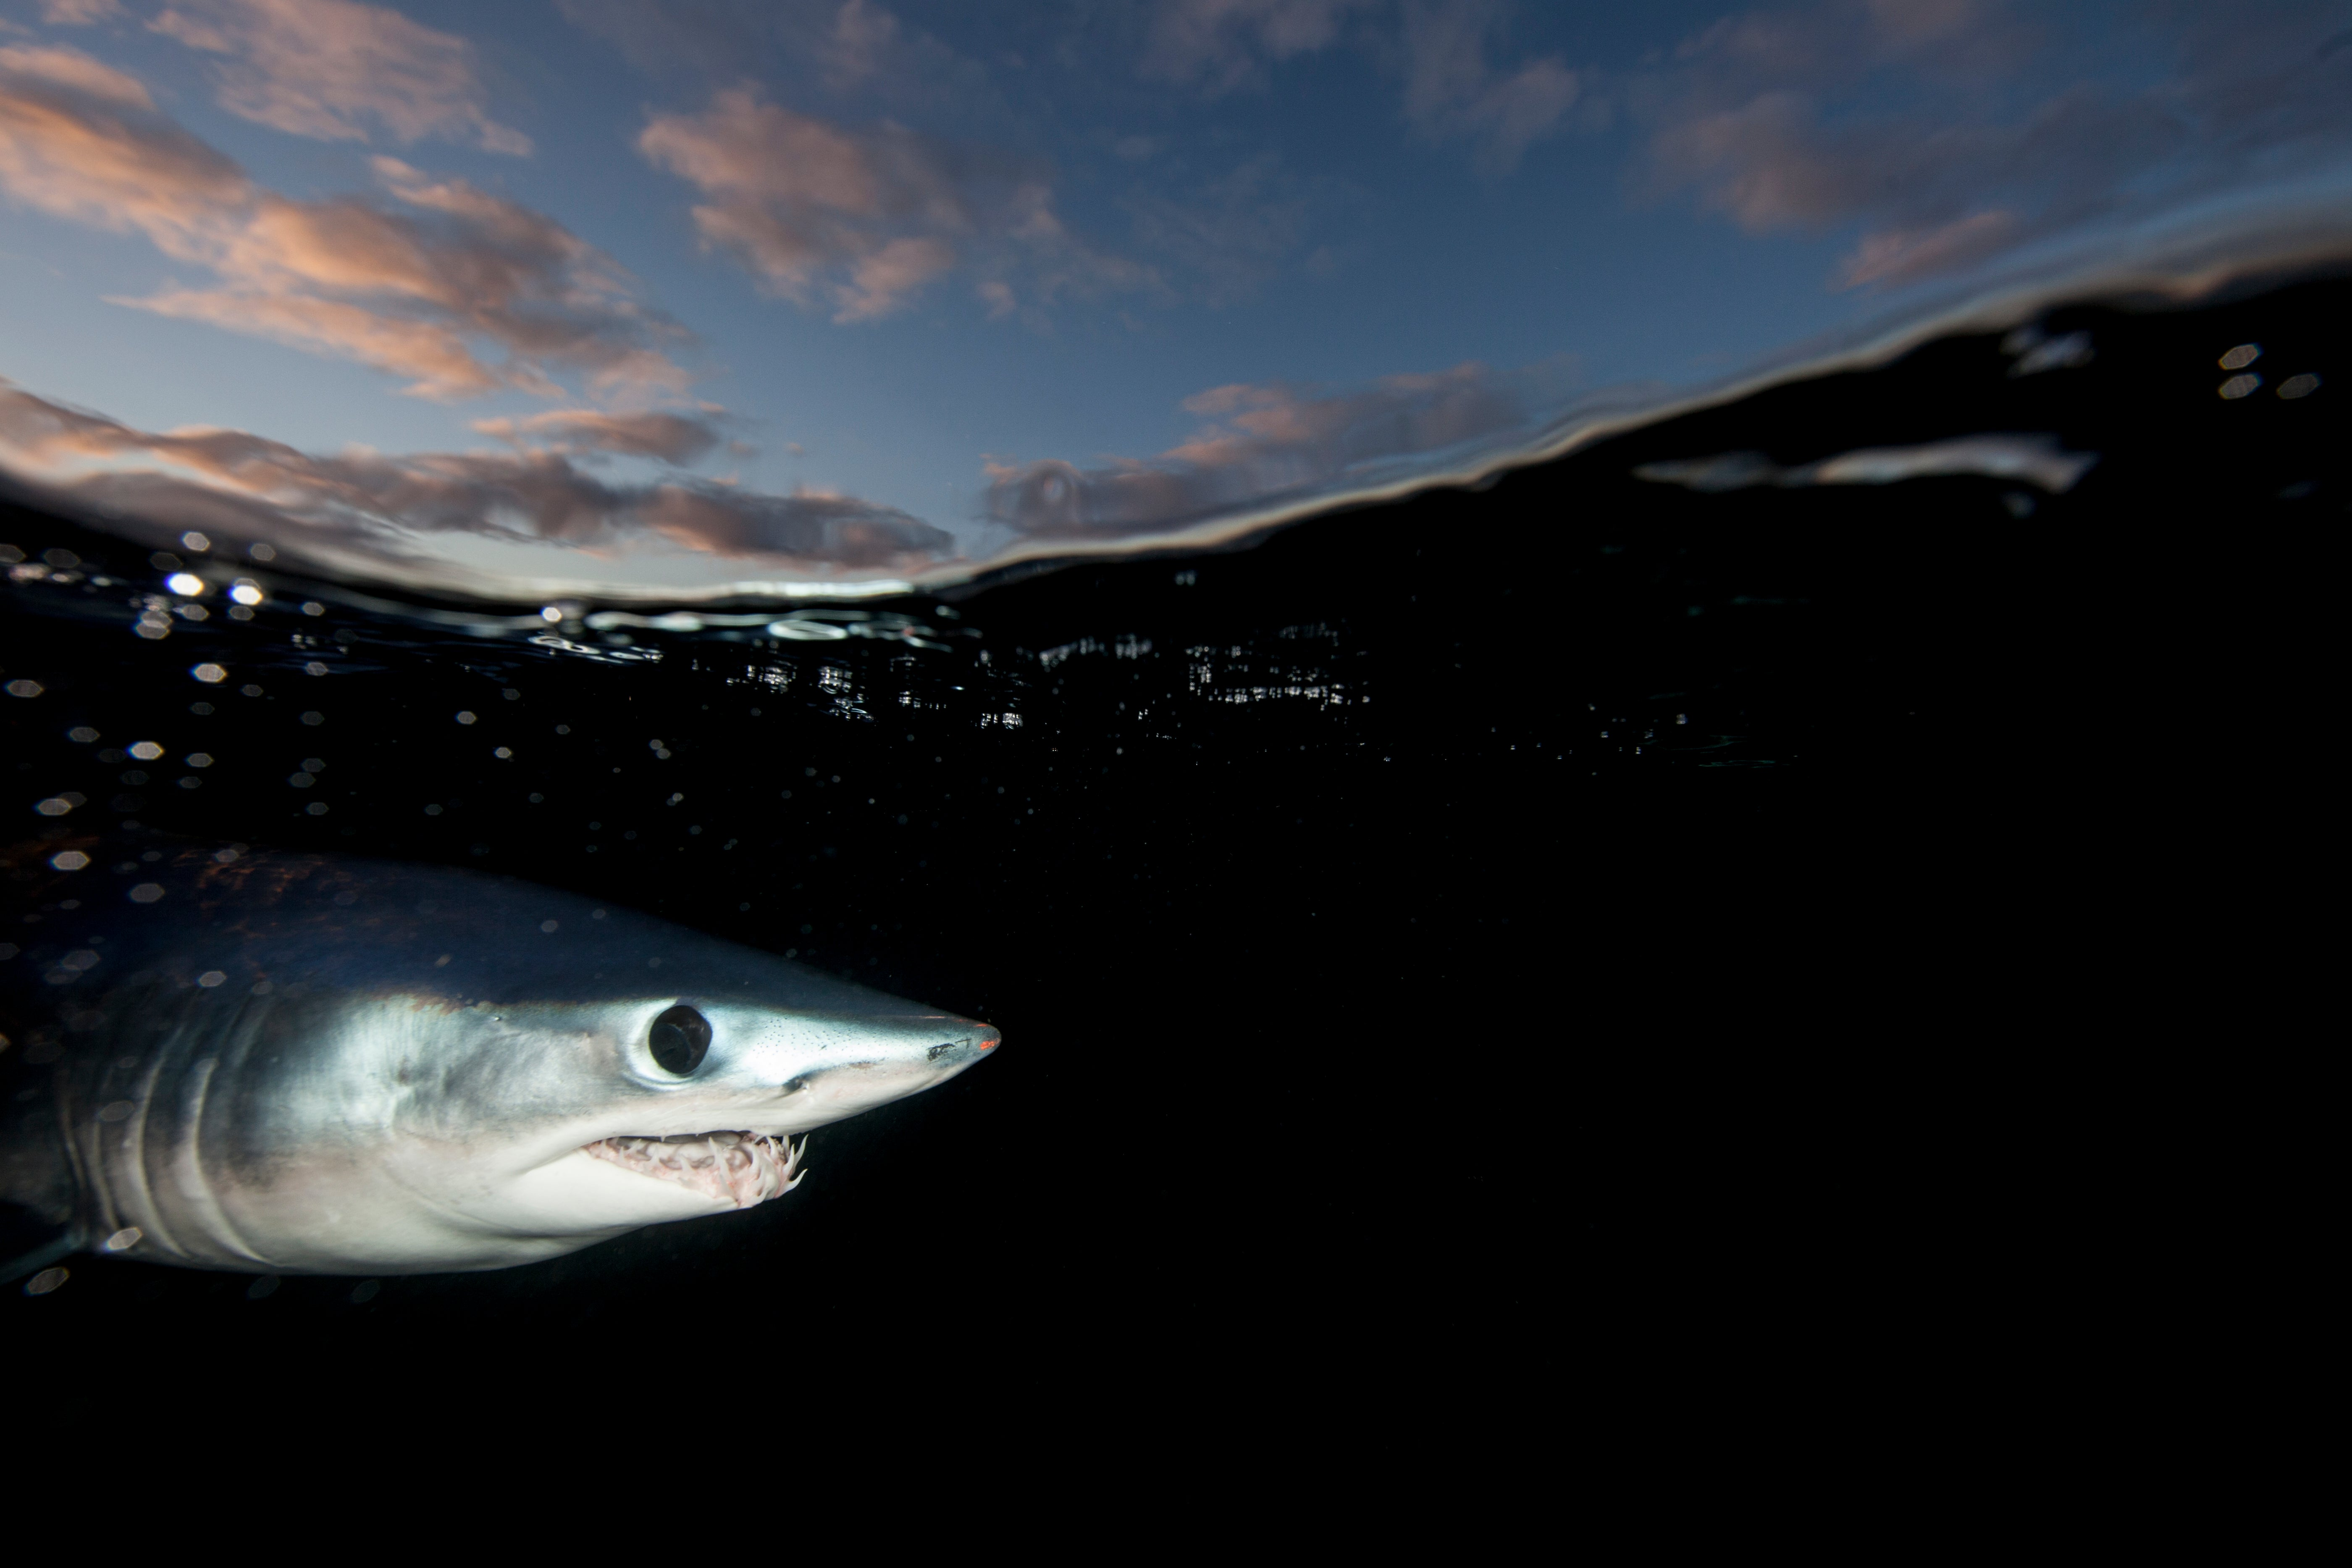 #Divers4Makos Petition Aims to Save the Atlantic Shortfin Mako from Extinction